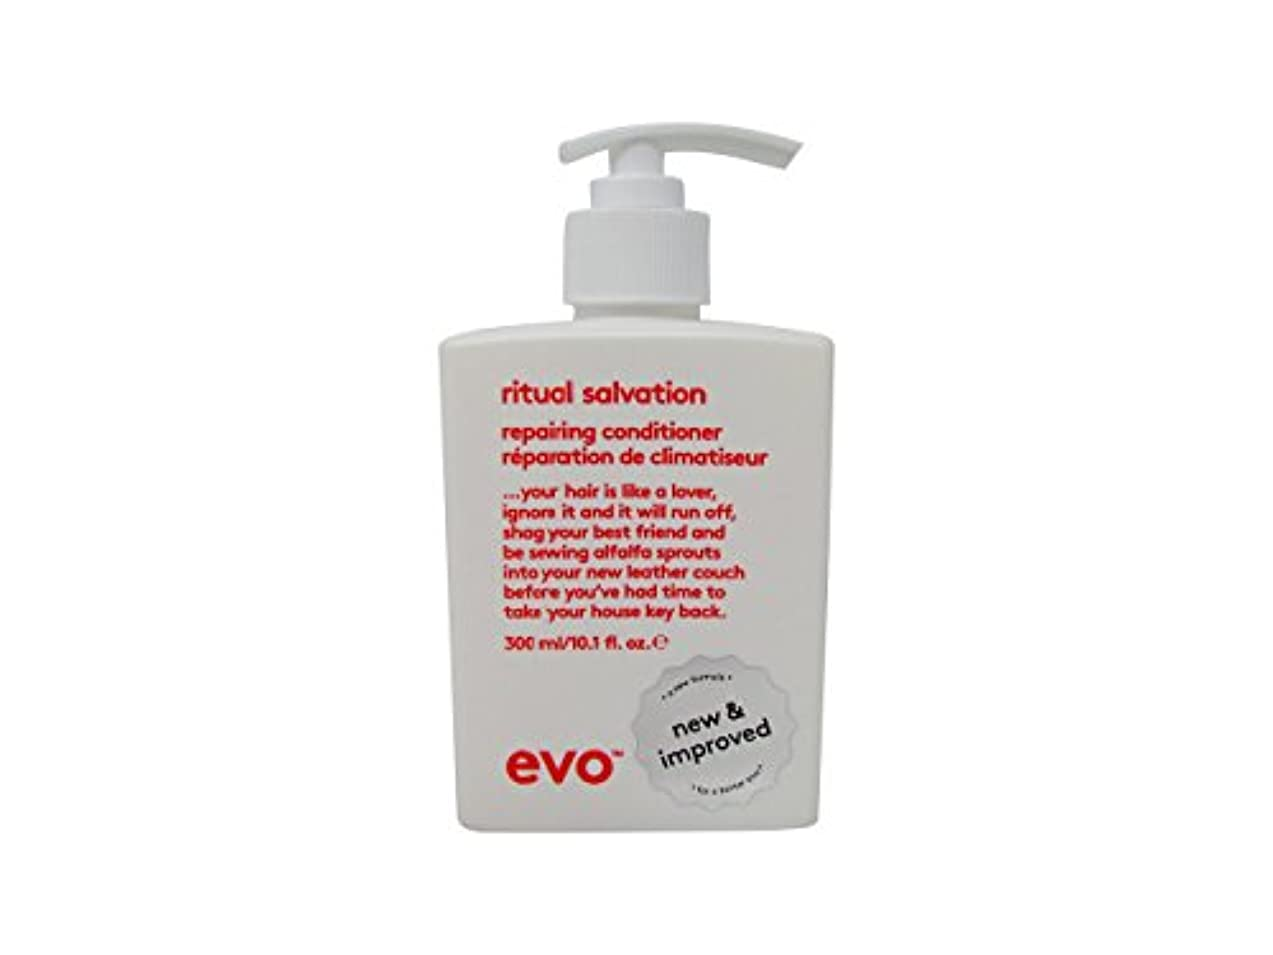 を除くメイドしなければならないEvo Ritual Salvation Care Conditioner (For Colour-Treated, Weak, Brittle Hair) 300ml/10.1oz